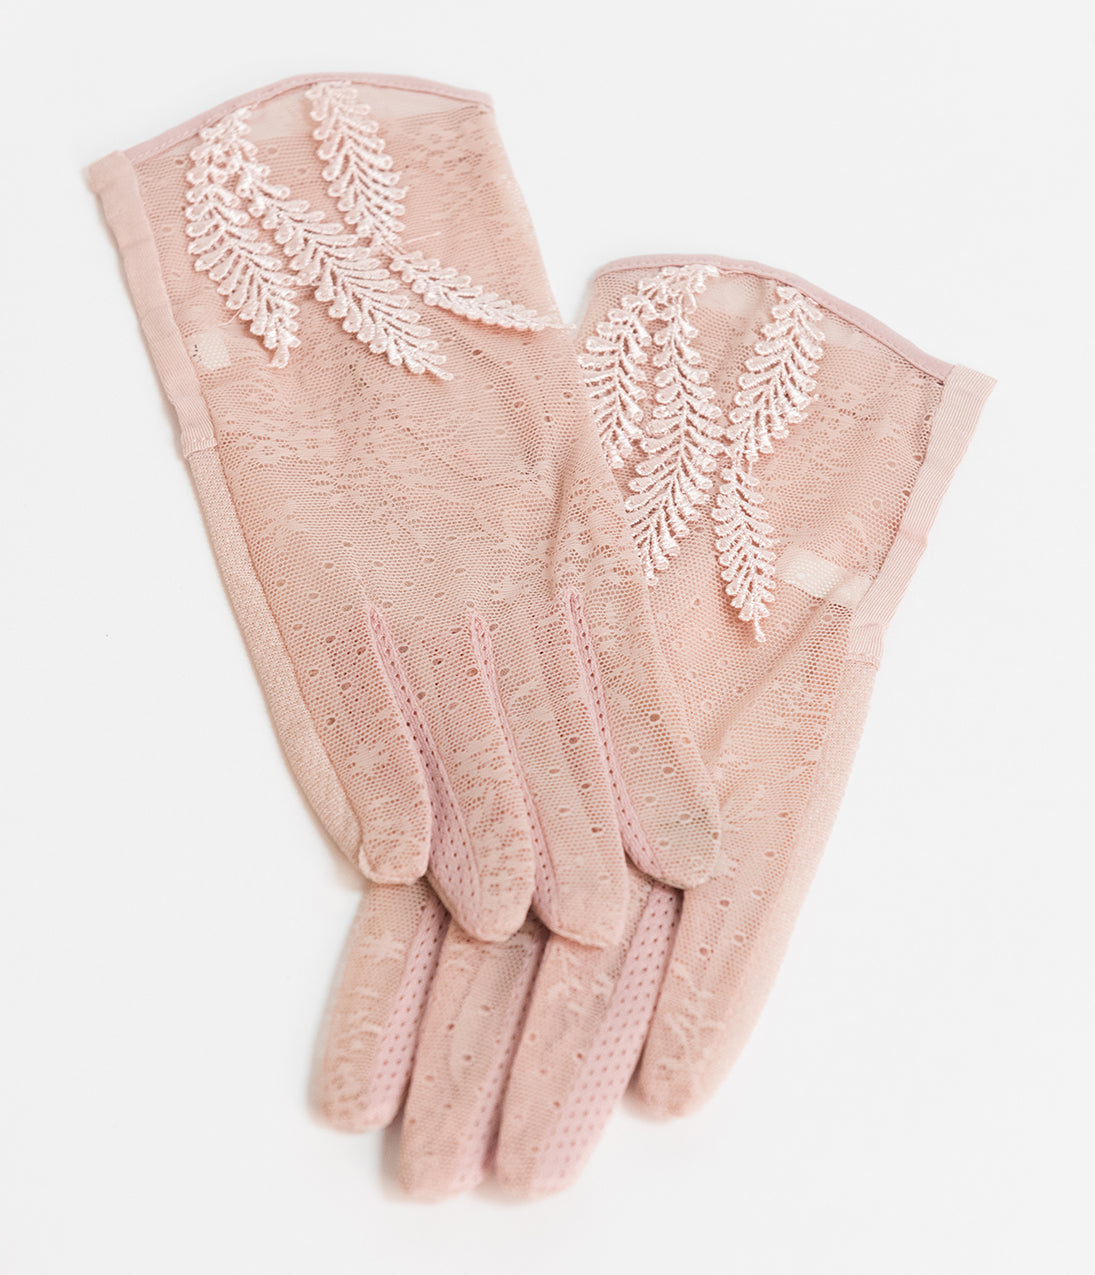 Vintage Style Gloves- Long, Wrist, Evening, Day, Leather, Lace Unique Vintage Dusty Pink Mesh Floral Wrist Gloves $20.00 AT vintagedancer.com